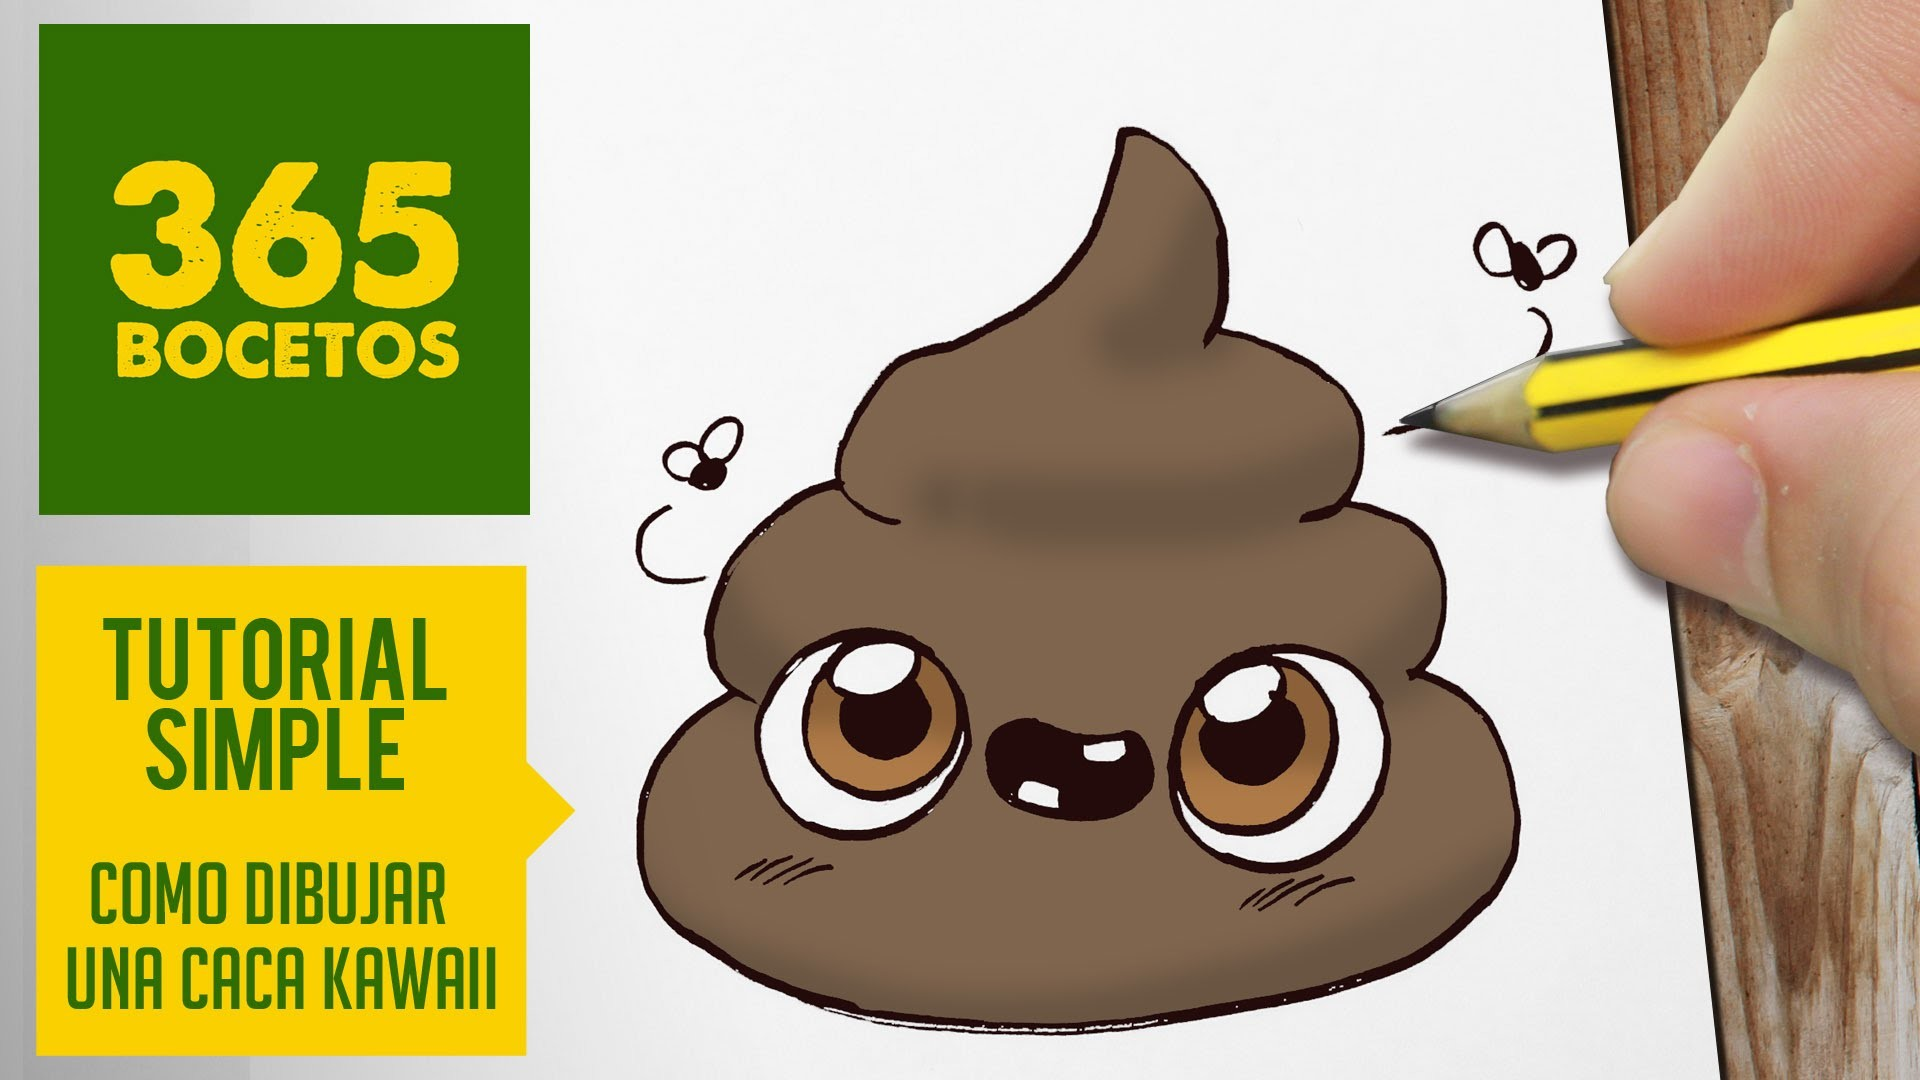 COMO DIBUJAR UNA CACA KAWAII PASO A PASO - Dibujos kawaii faciles - How to draw a poo